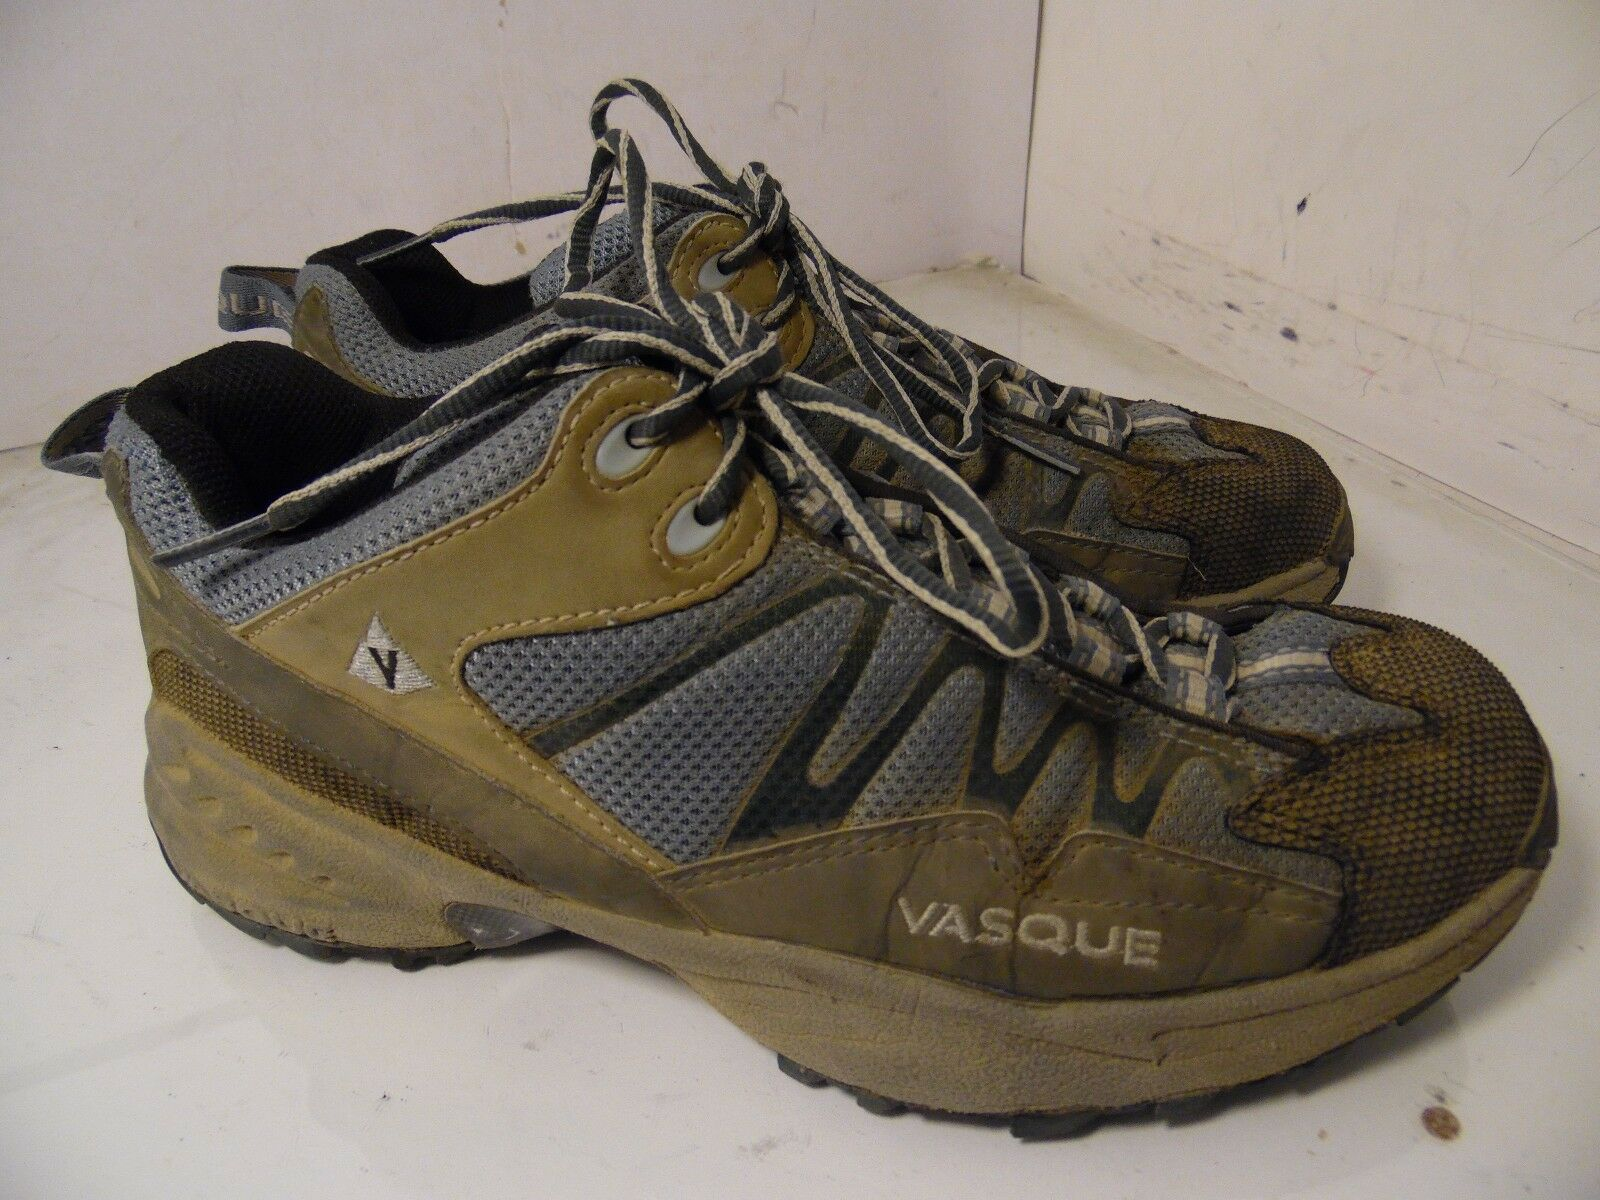 Vasque Velocity Trail Hiking shoes - Dusty bluee Slate - Womens 7611 Size 8.5